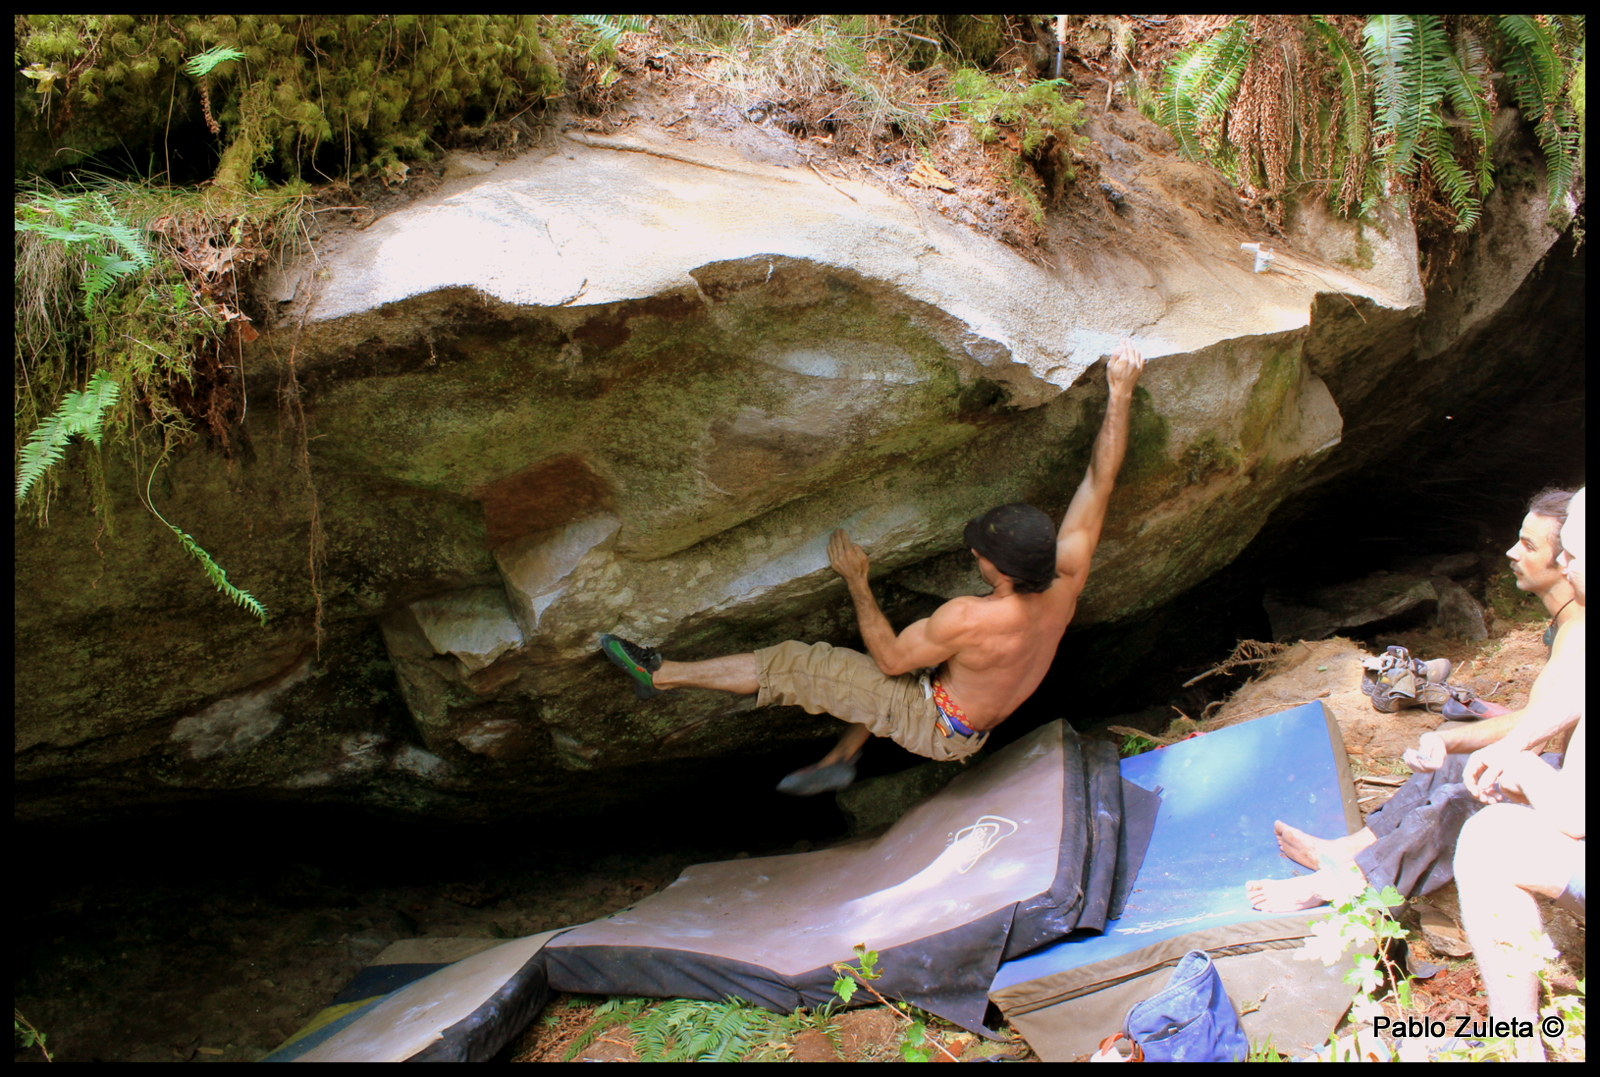 Pablo Zuleta sticking the crux after getting good foot beta from Ben and Kerwin.